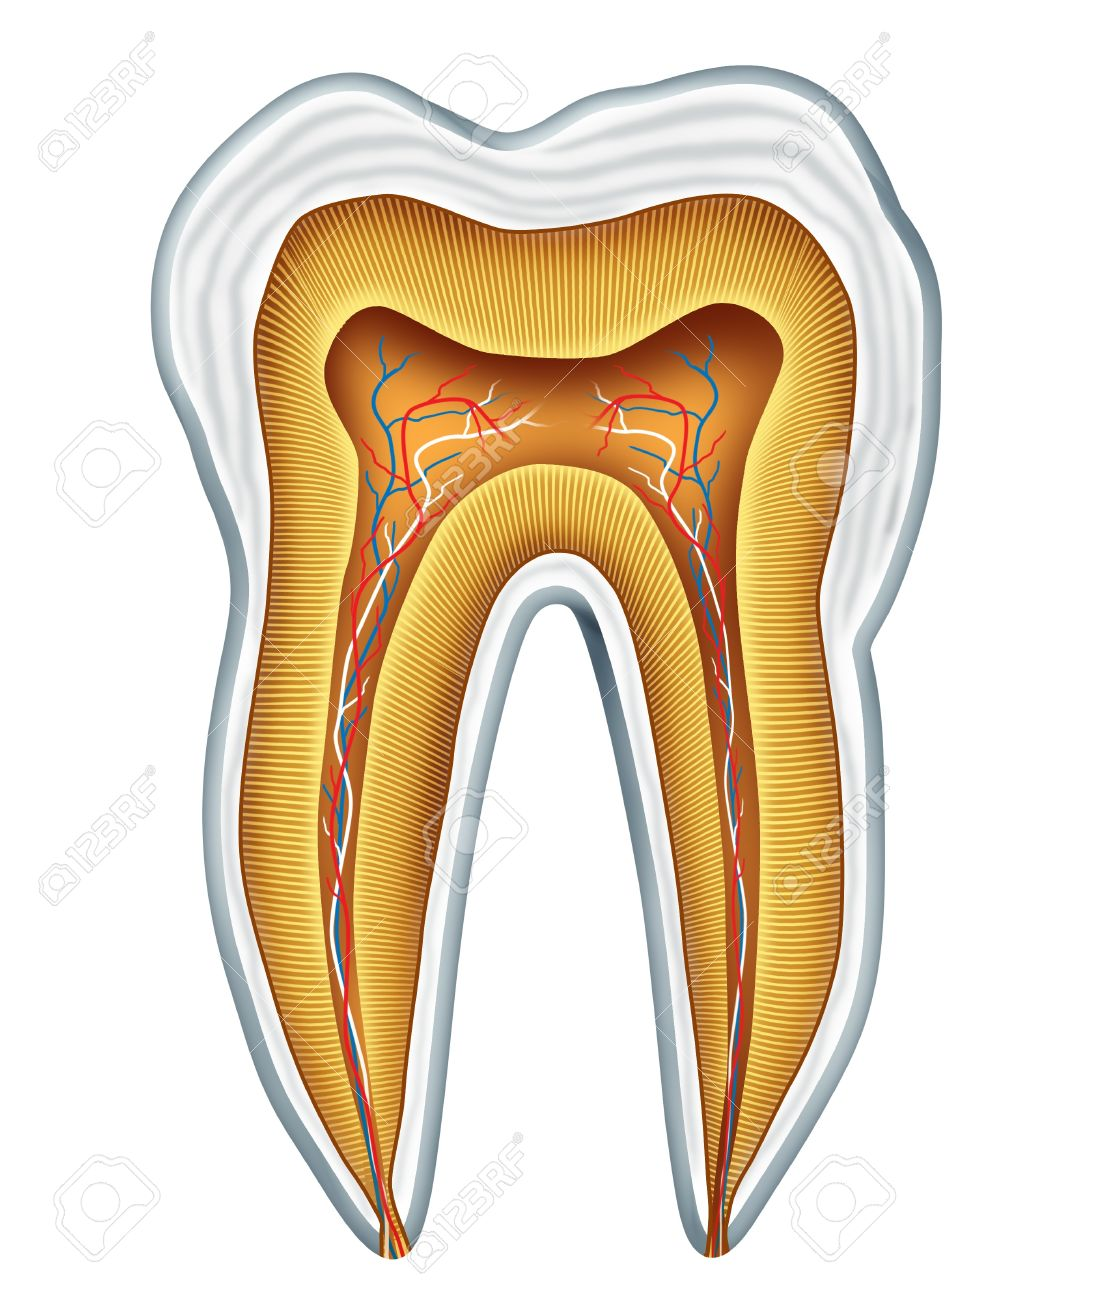 Tooth anatomy cross section for medical dental clinic and oral surgeon representing dentist medicine and dentistry surgery represented by a healthy cavity free frontal view showing the inside of the human skull body part. Stock Photo - 10976407